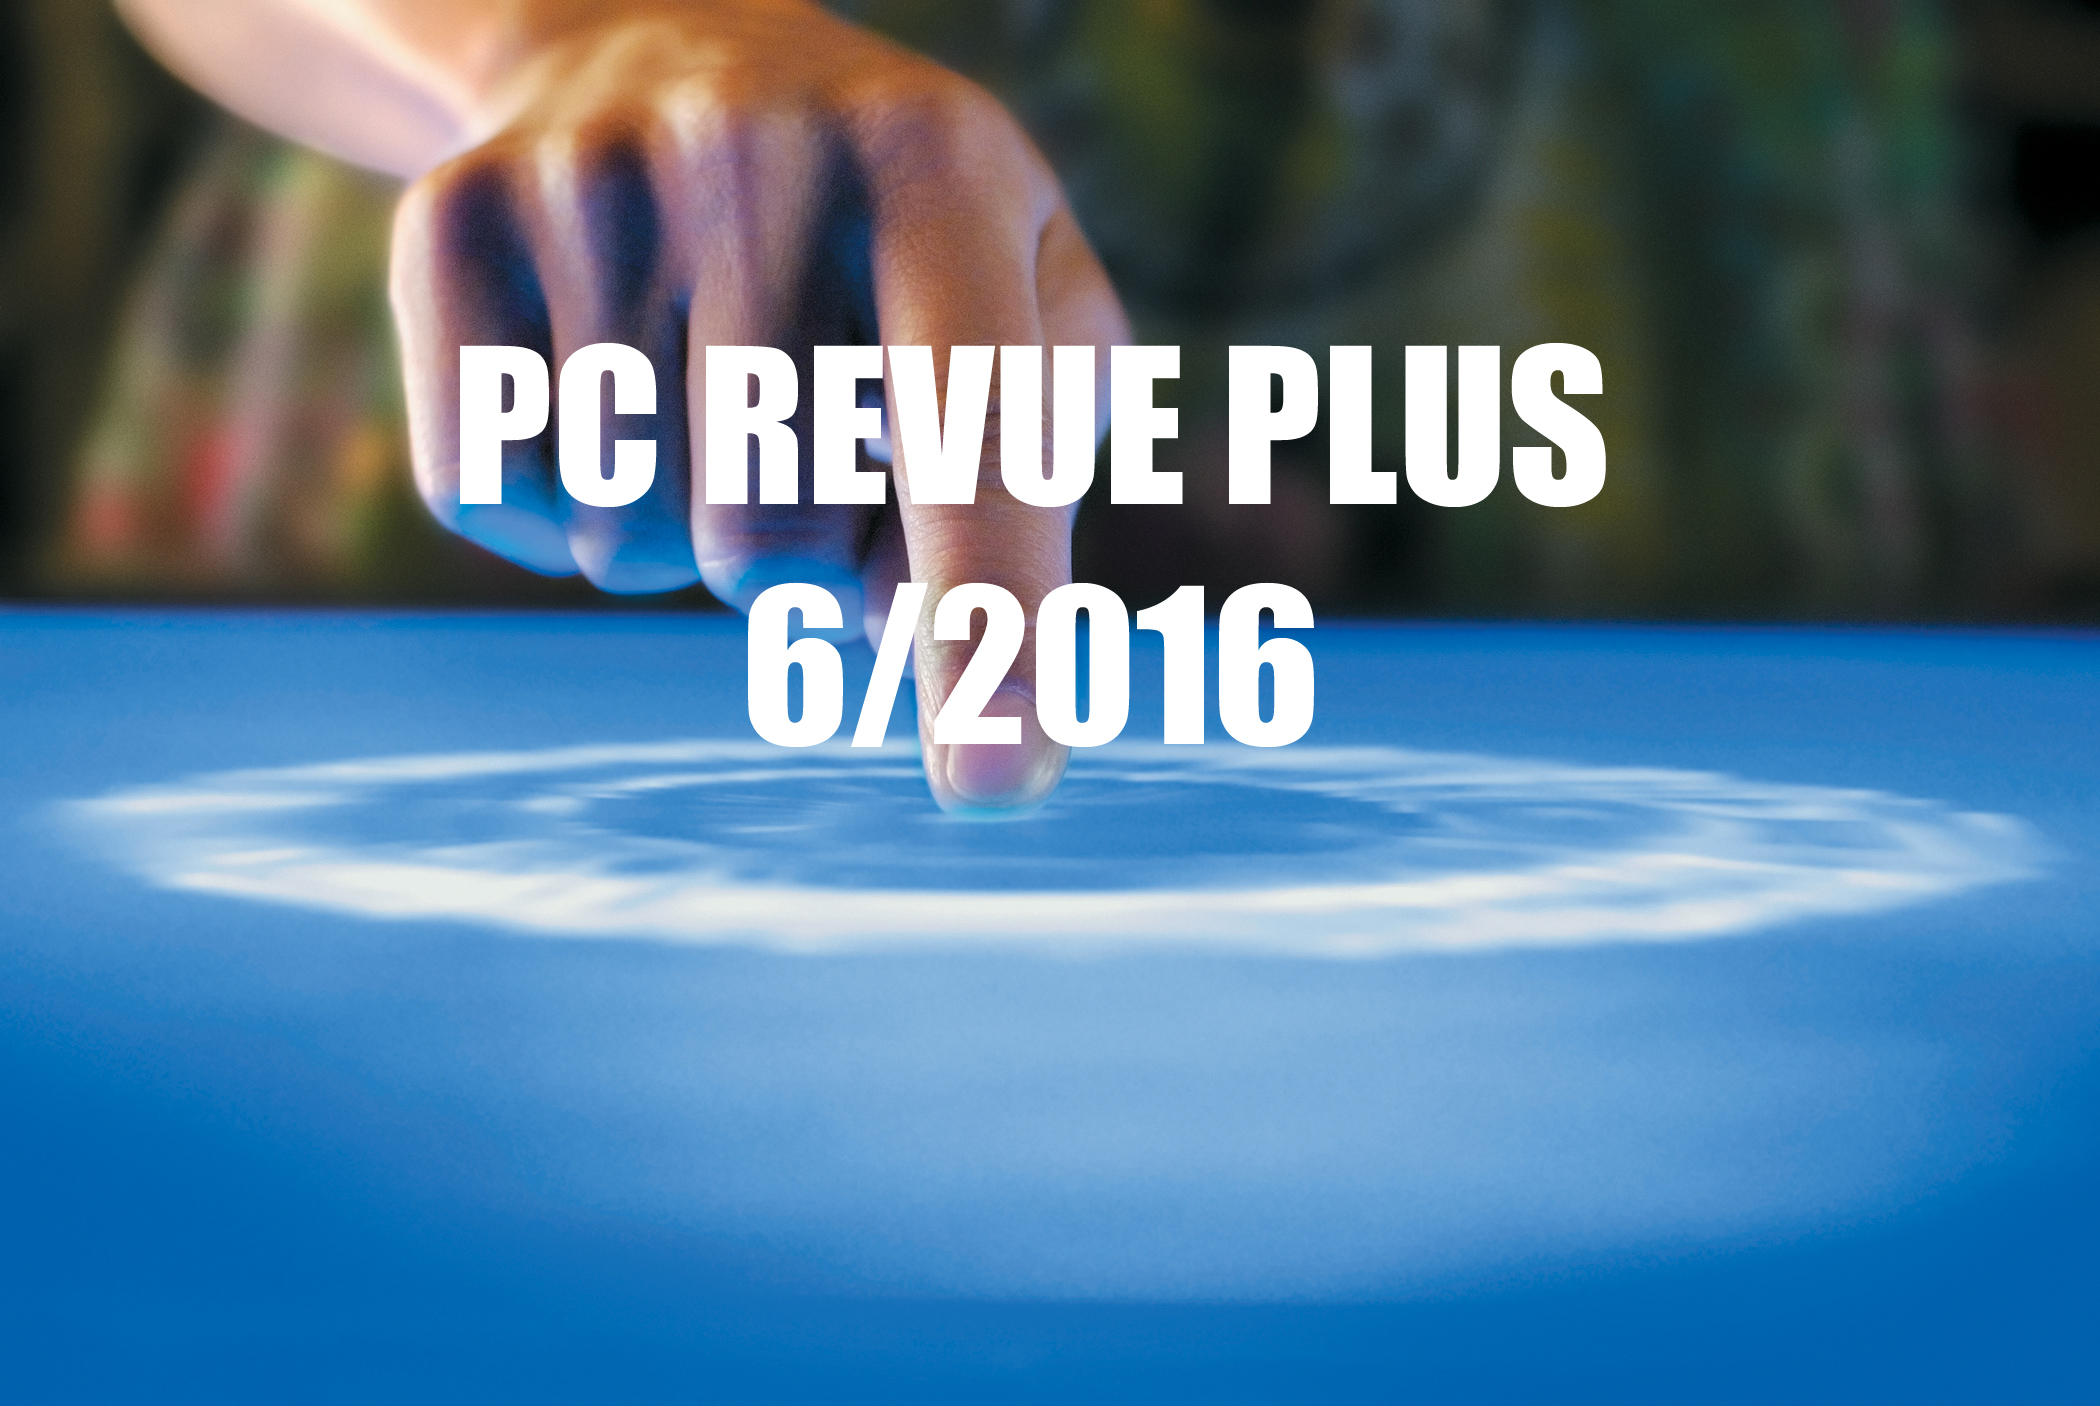 Photo PC REVUE plus 6/2016